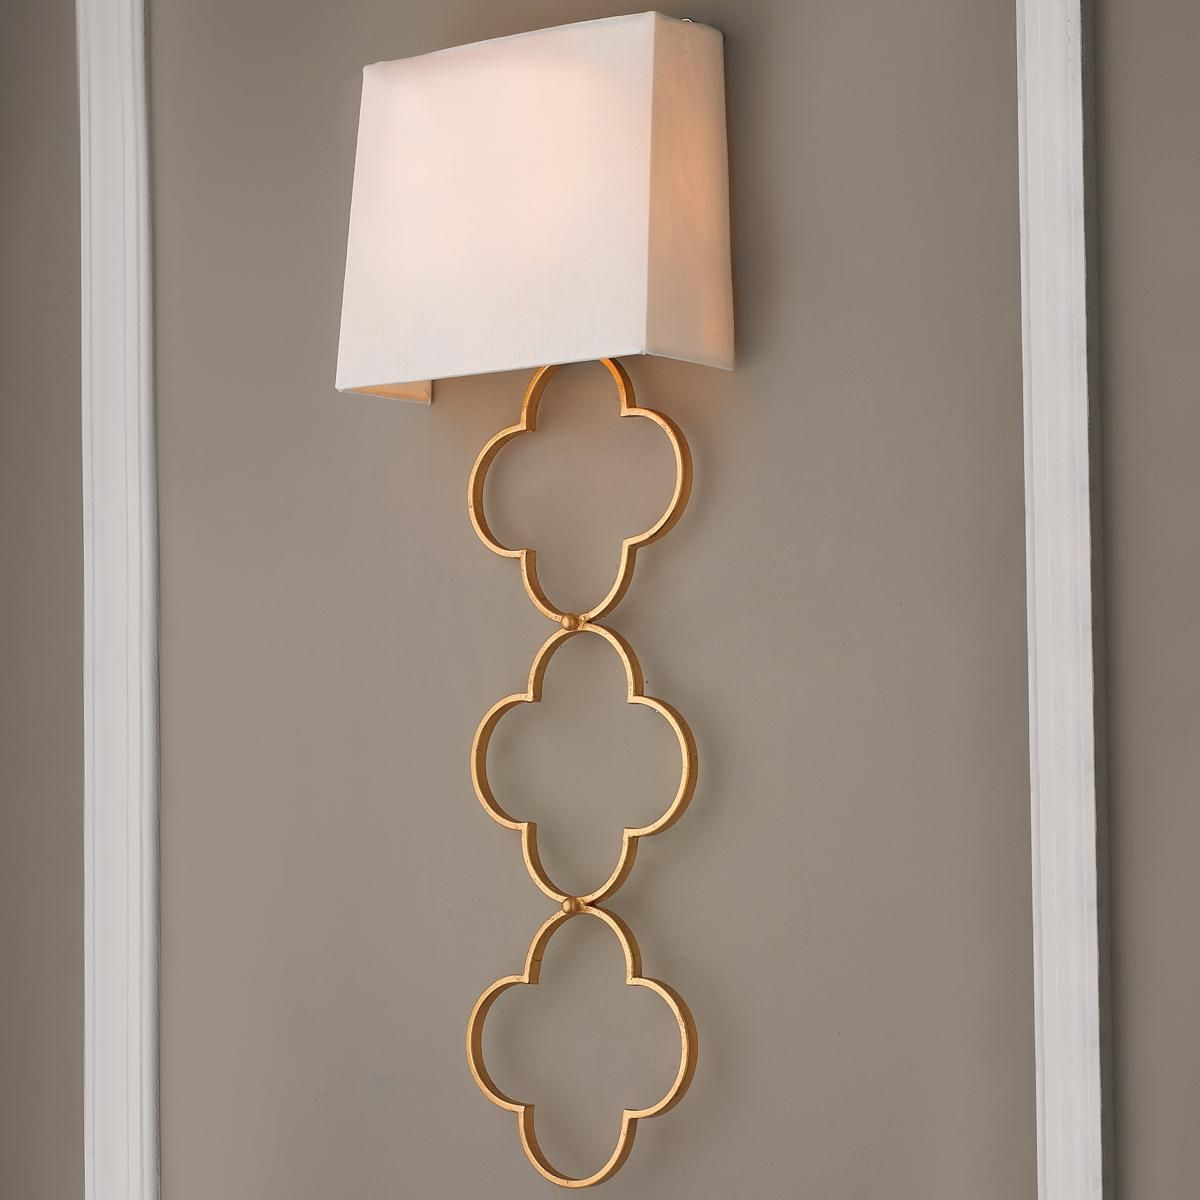 Gold Wall Lampshades : ADA Quatrefoil Chain Wall Sconce This stunning wall sconce is sure to catch attention. The ...